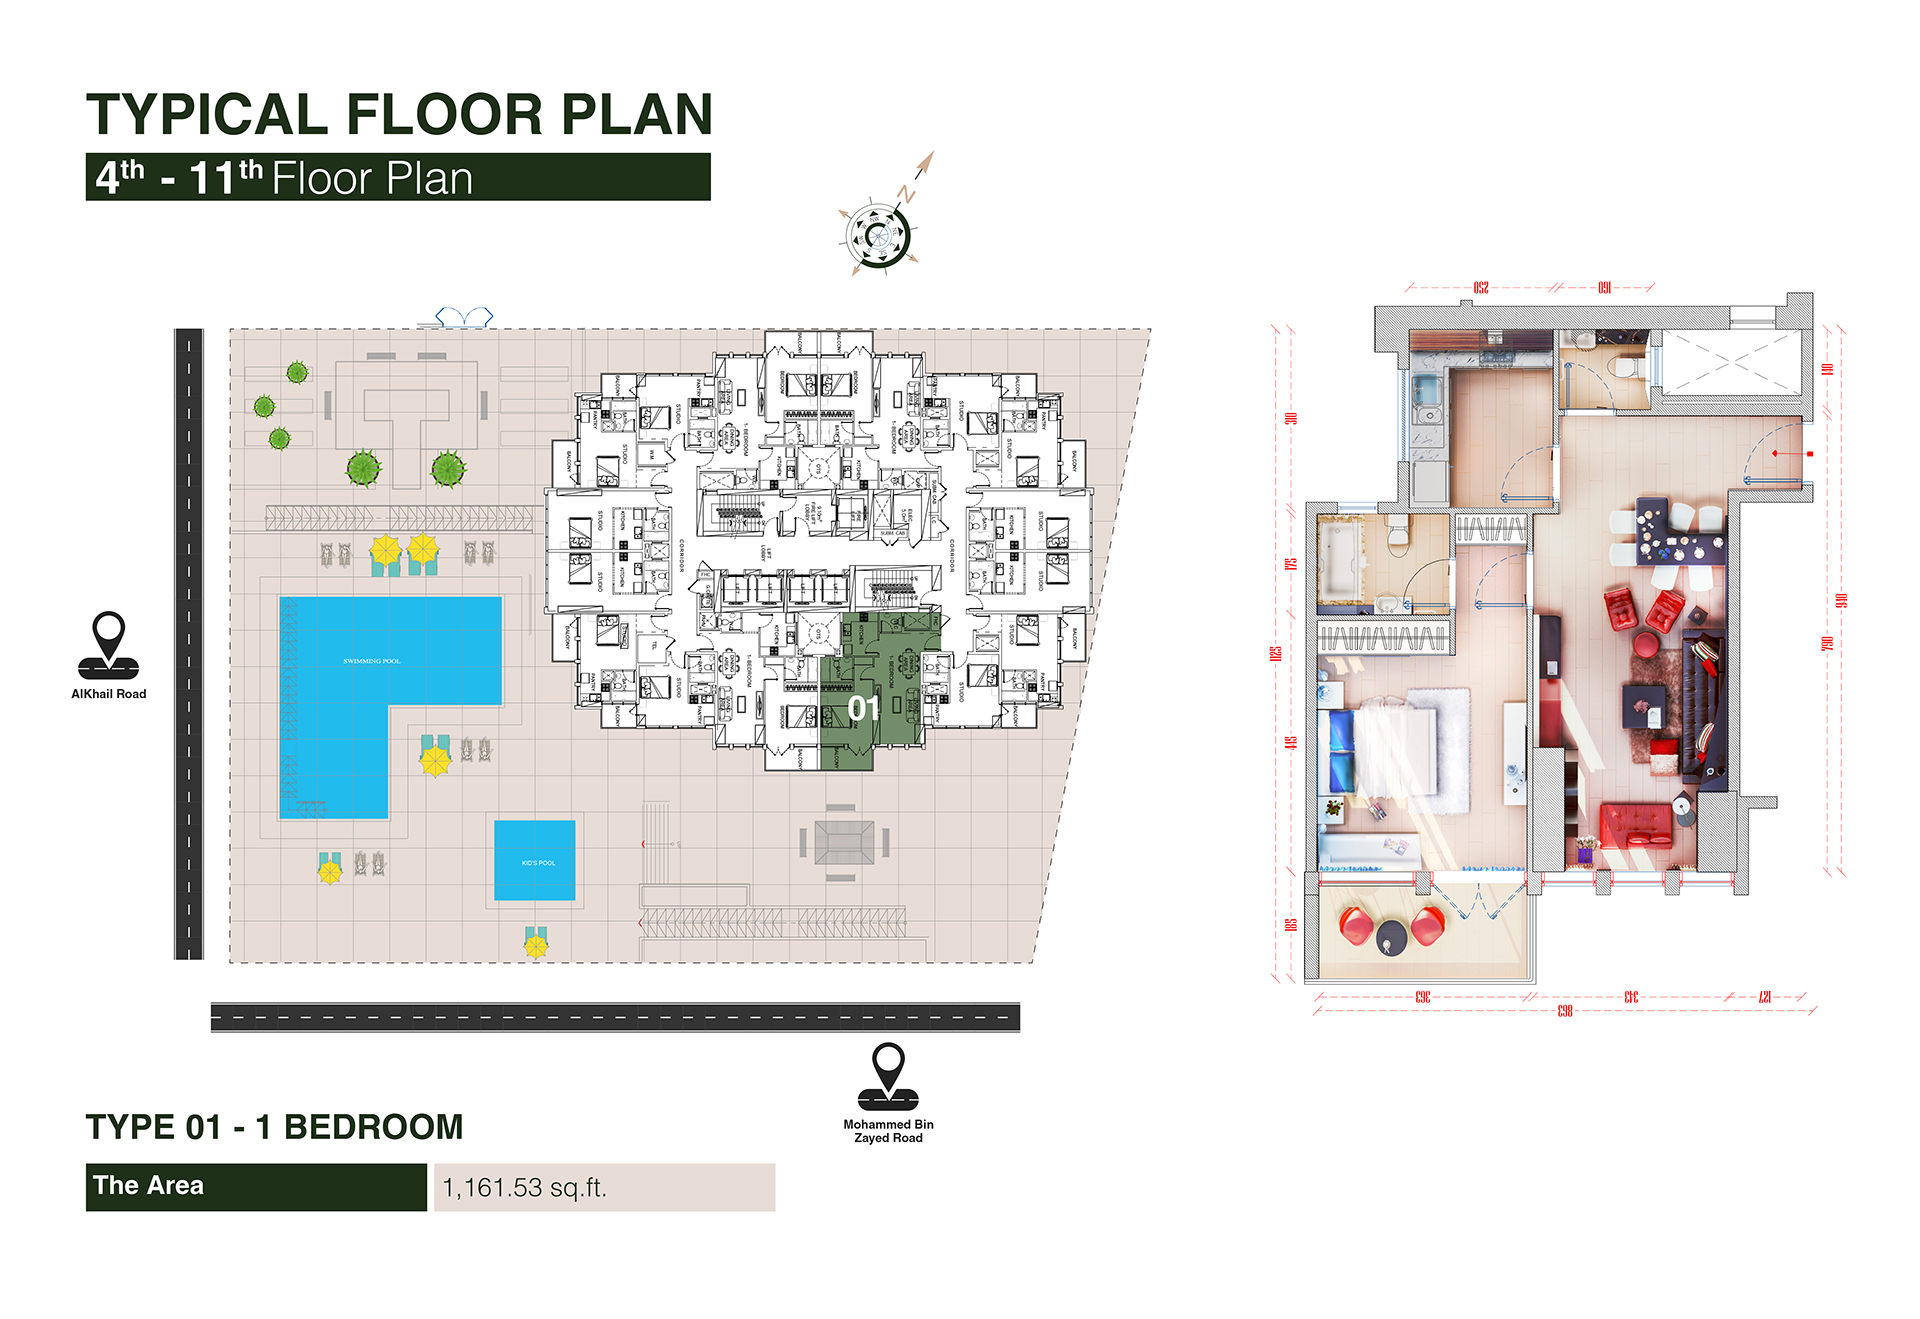 1 Bedroom Type 1, Size 1161 Sq Ft